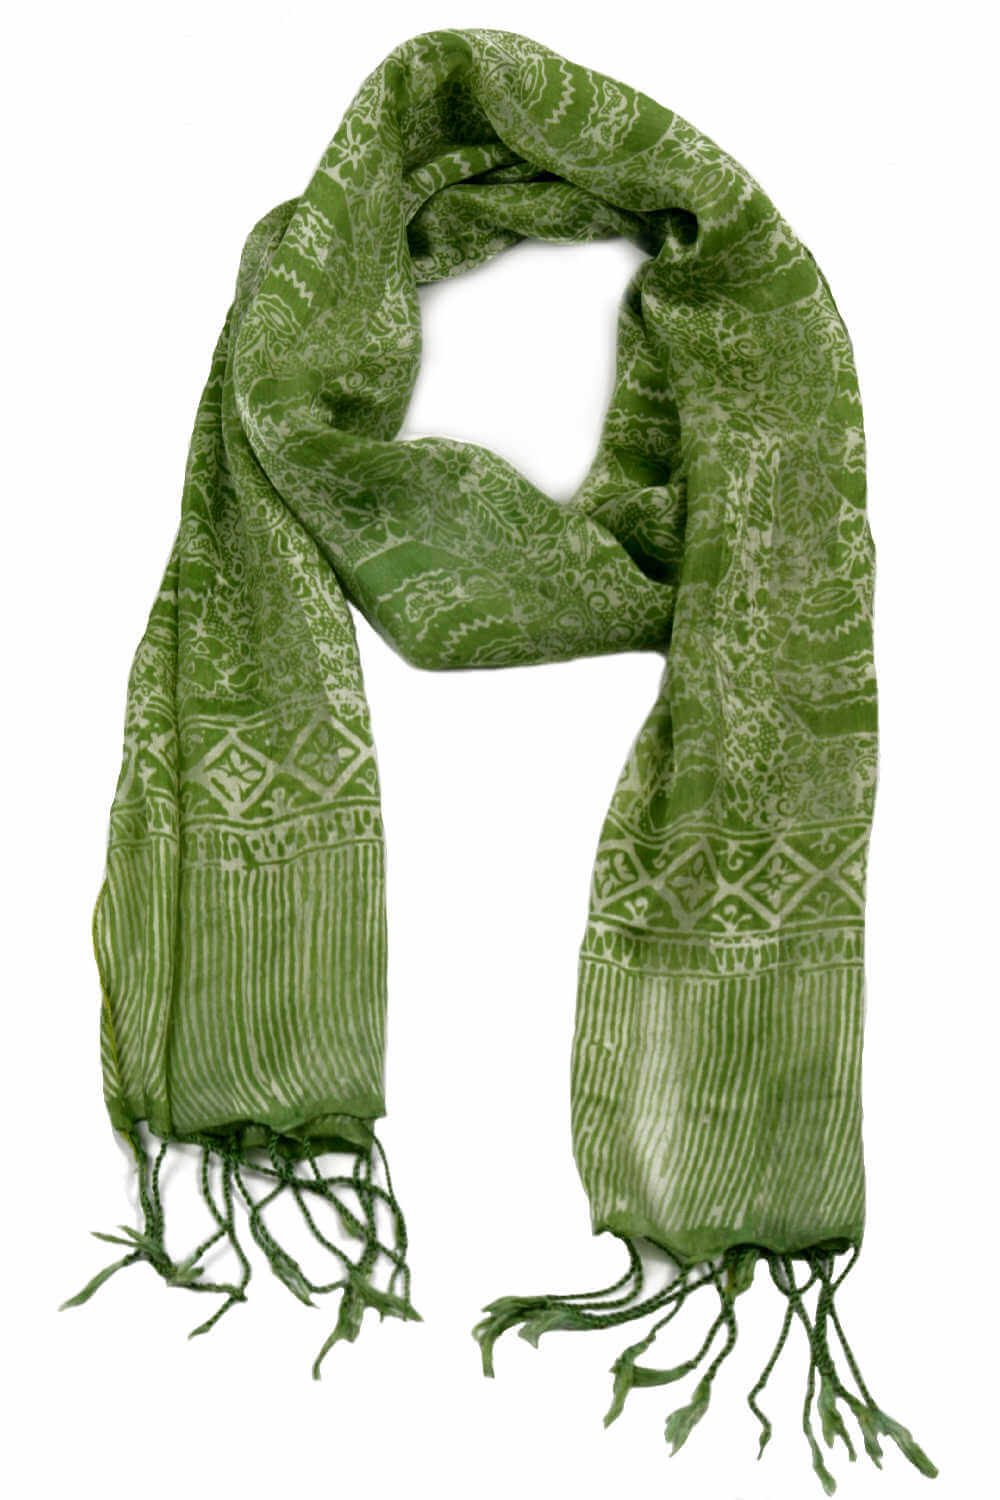 lime-green-silk-scarf-floral-design-ladies